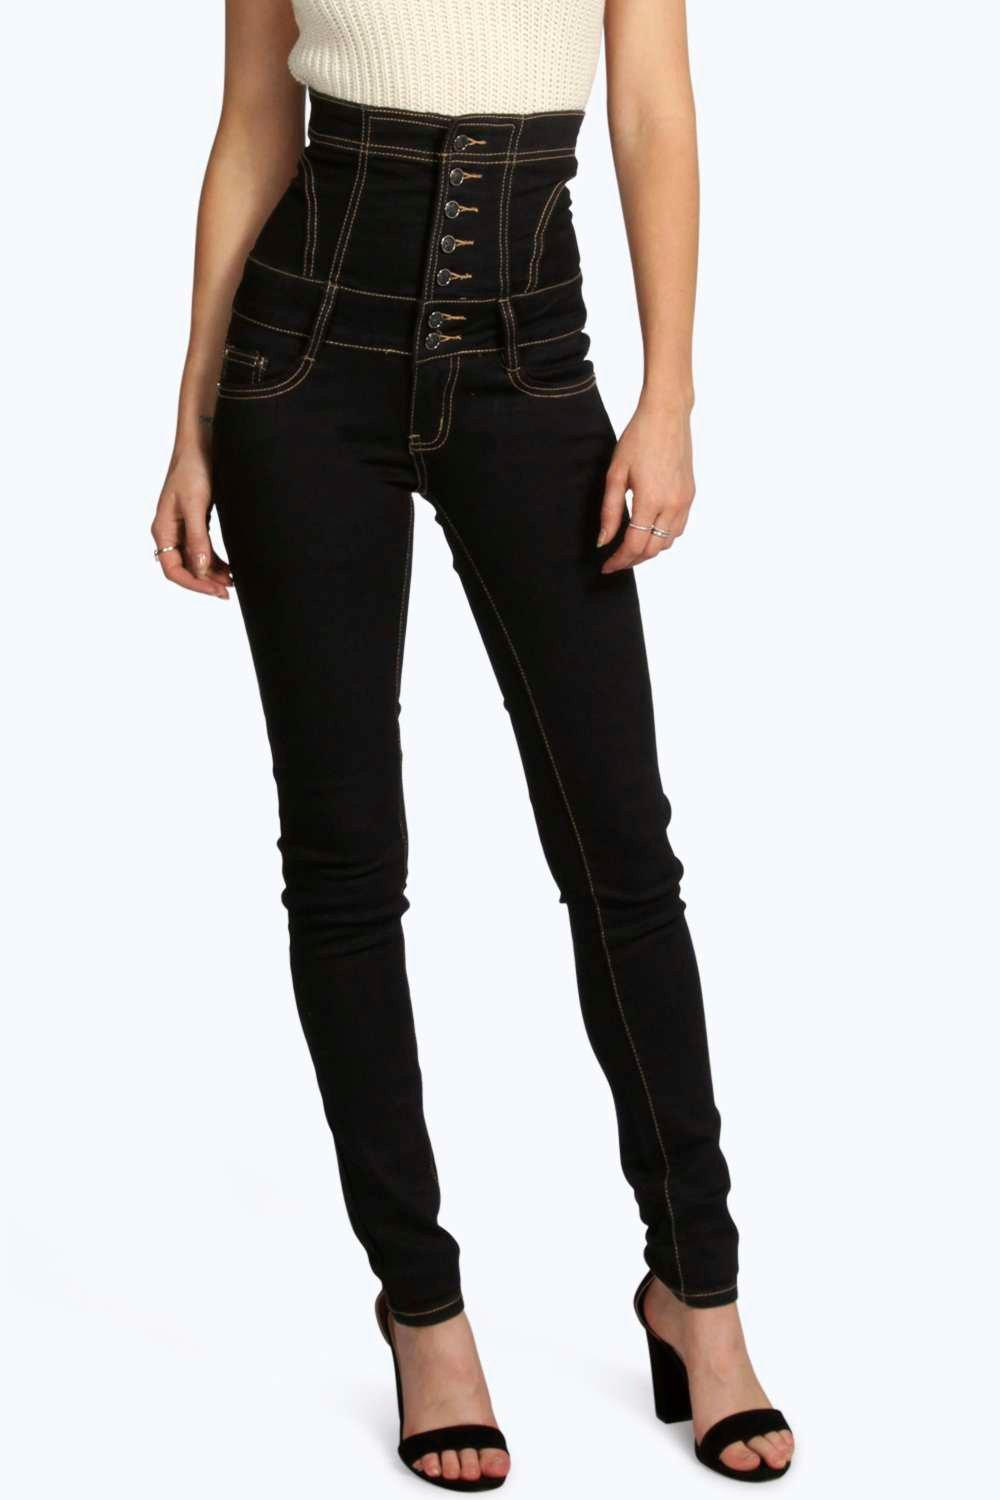 Take your style to the next level with a pair of high waist jeans from this 8110f8010